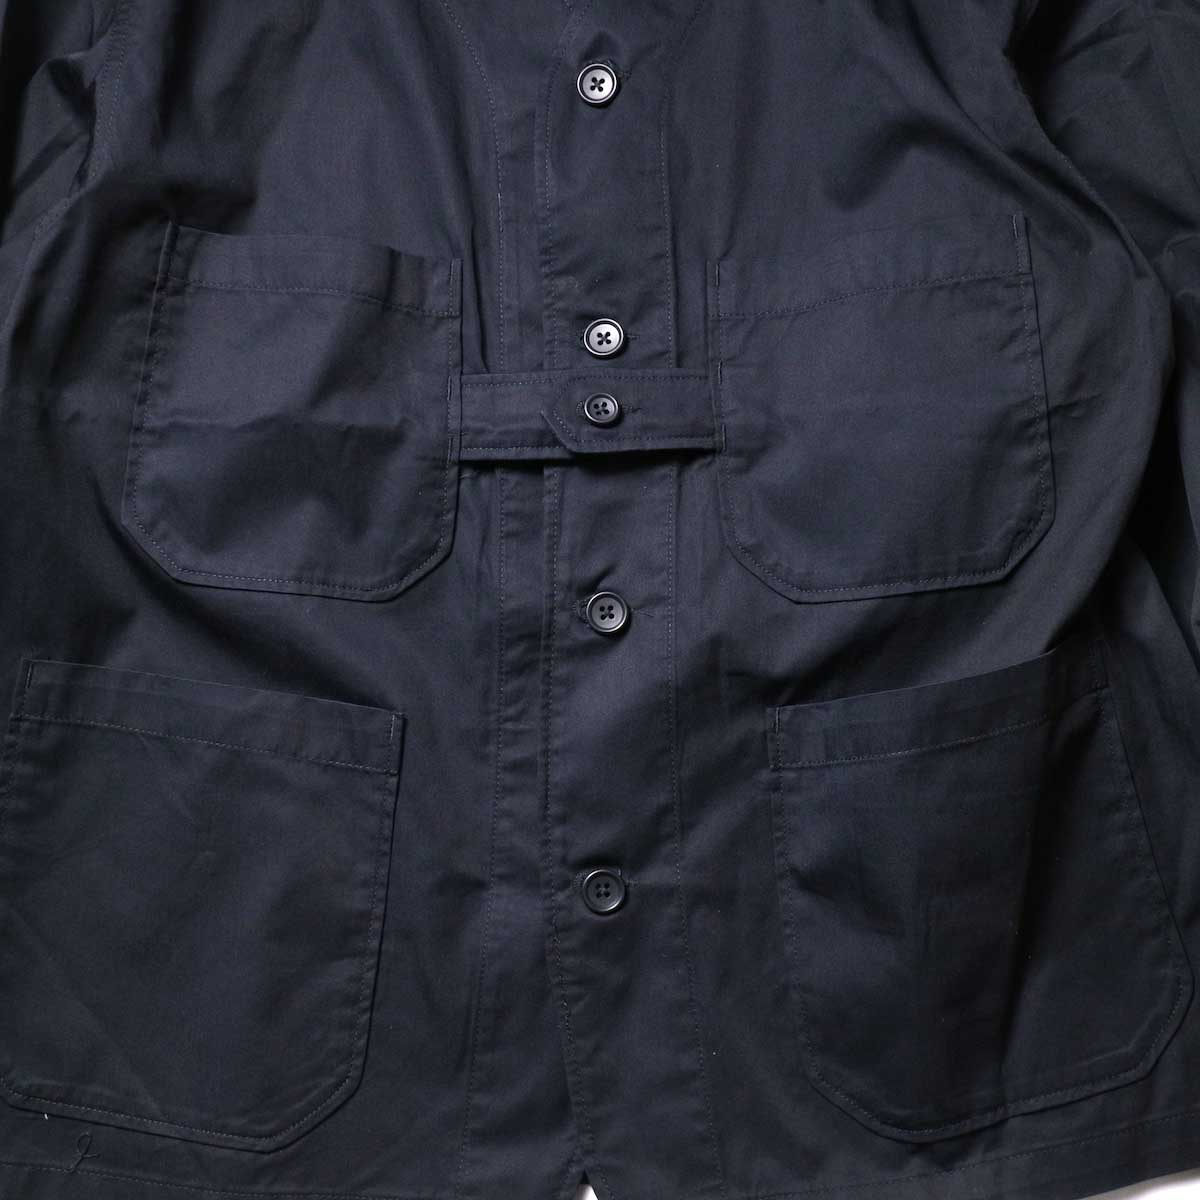 Engineered Garments / Cardigan Jacket -High Count Twill (Black)ポケット